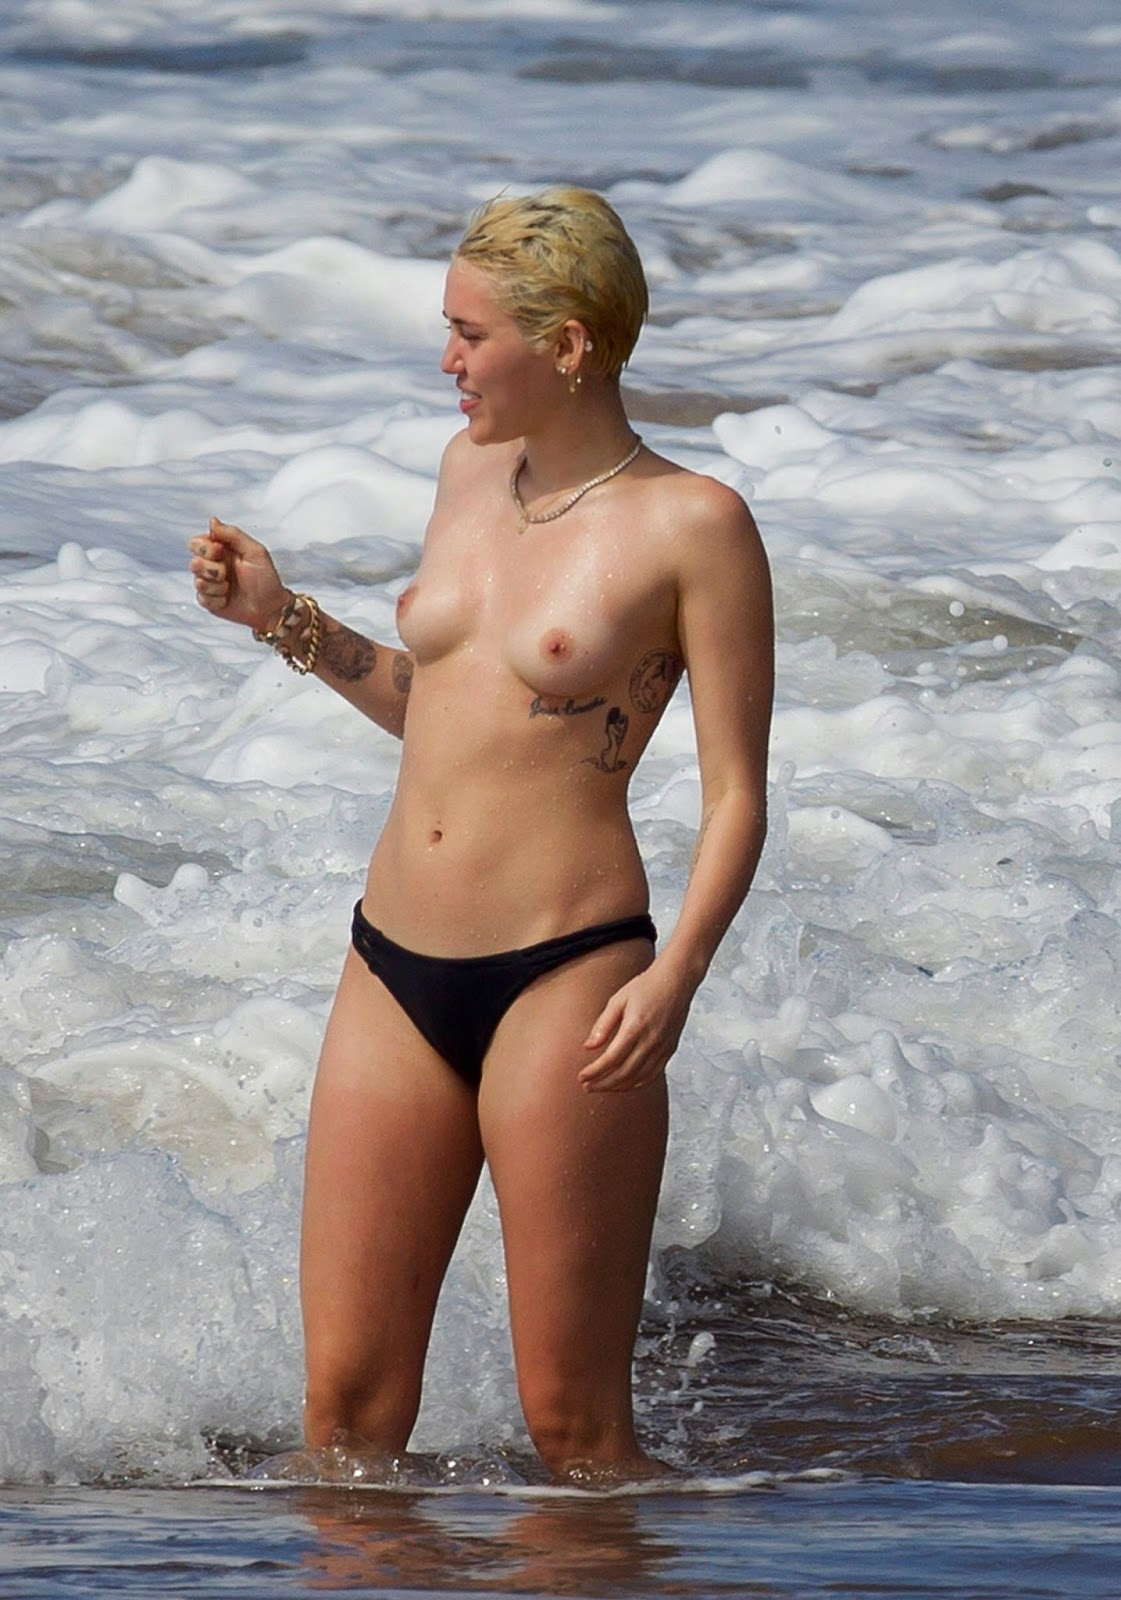 miley cyrus nude waterfall